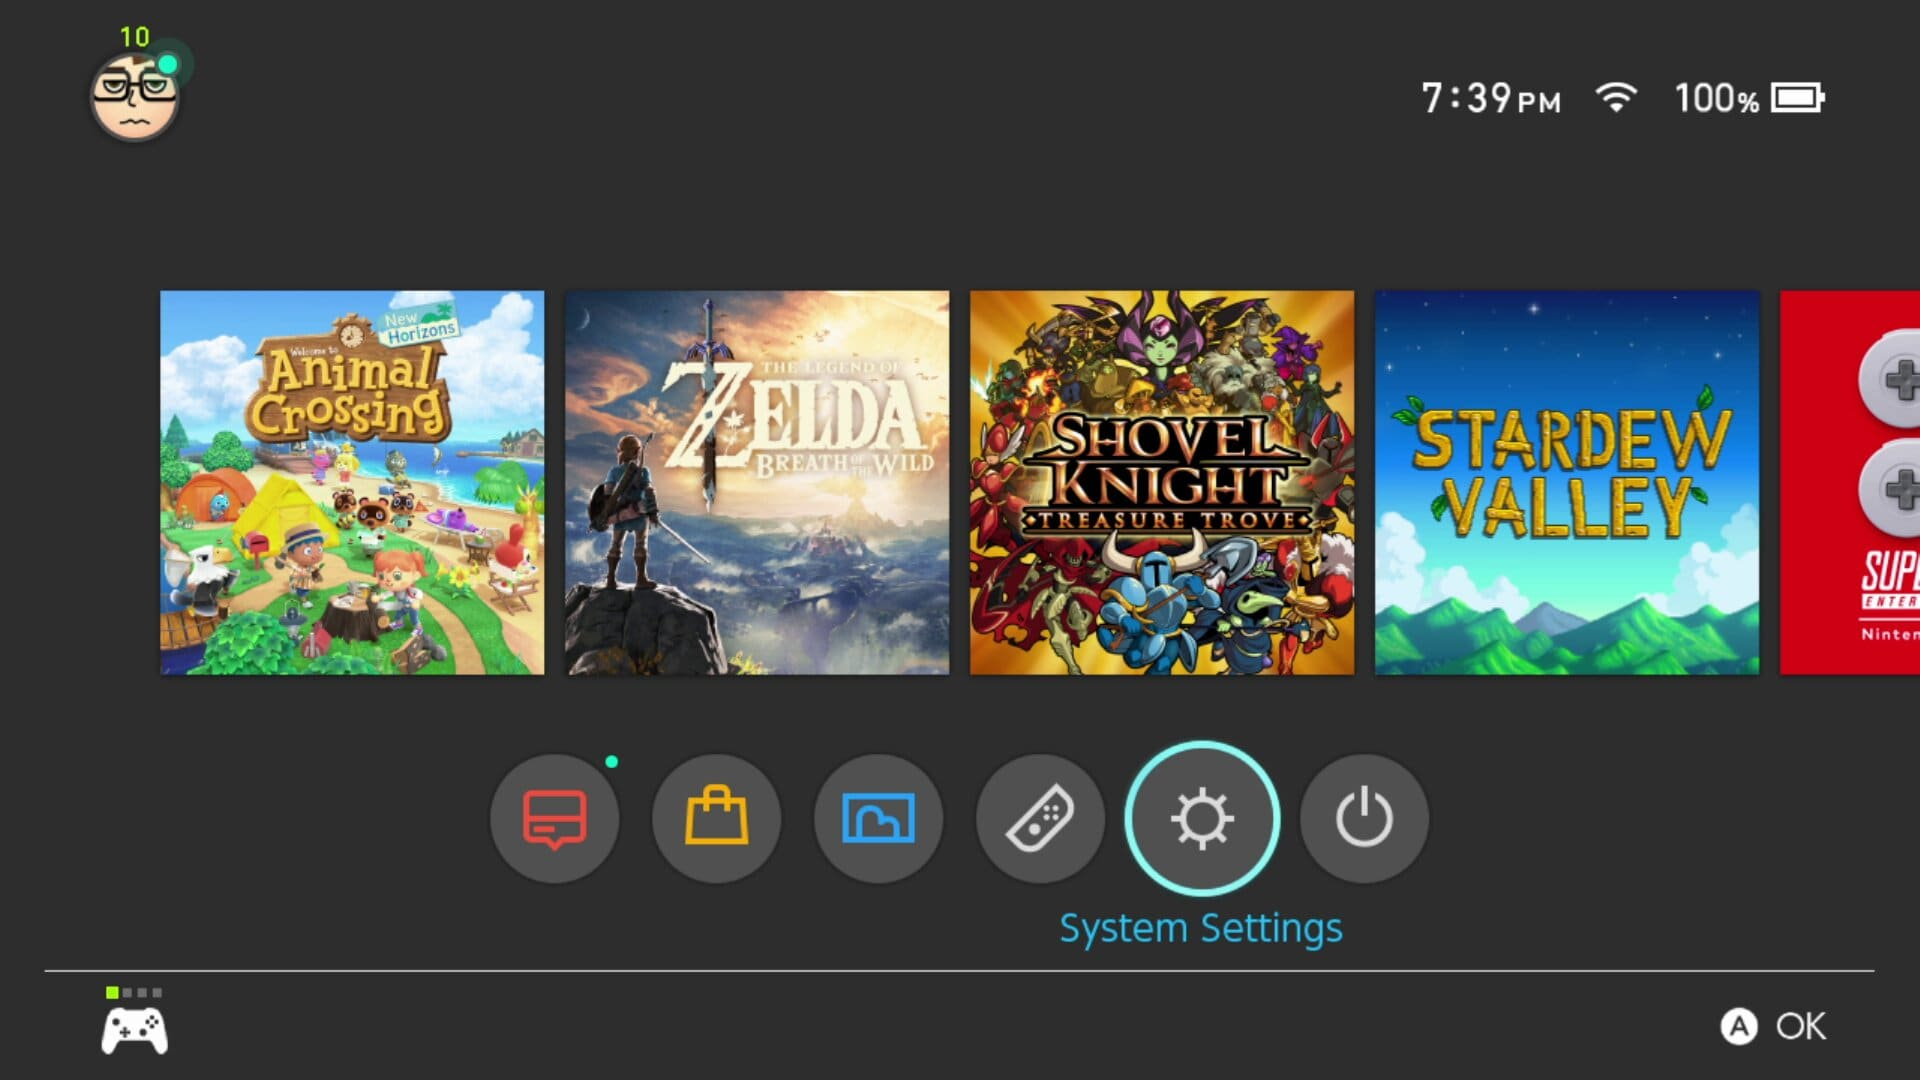 Locate the System settings on your Switch menu